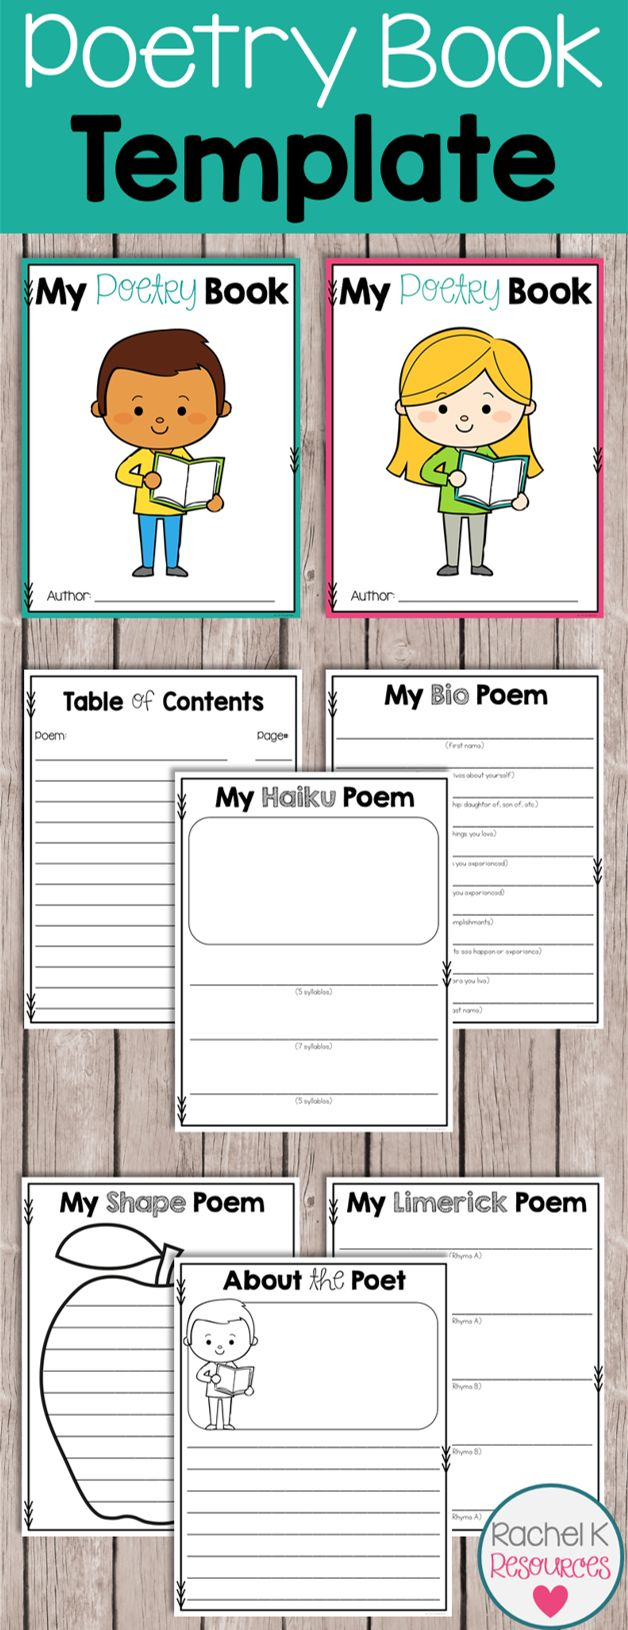 Students can create their very own poetry books with this template! Poems include acrostic, haiku, cinquain, quatrain, limerick, shape, and more! Every poem has the option of writing a half page with space to color, or writing a full page. Title pages, table of contents, and about the poet pages are included to make the book complete!